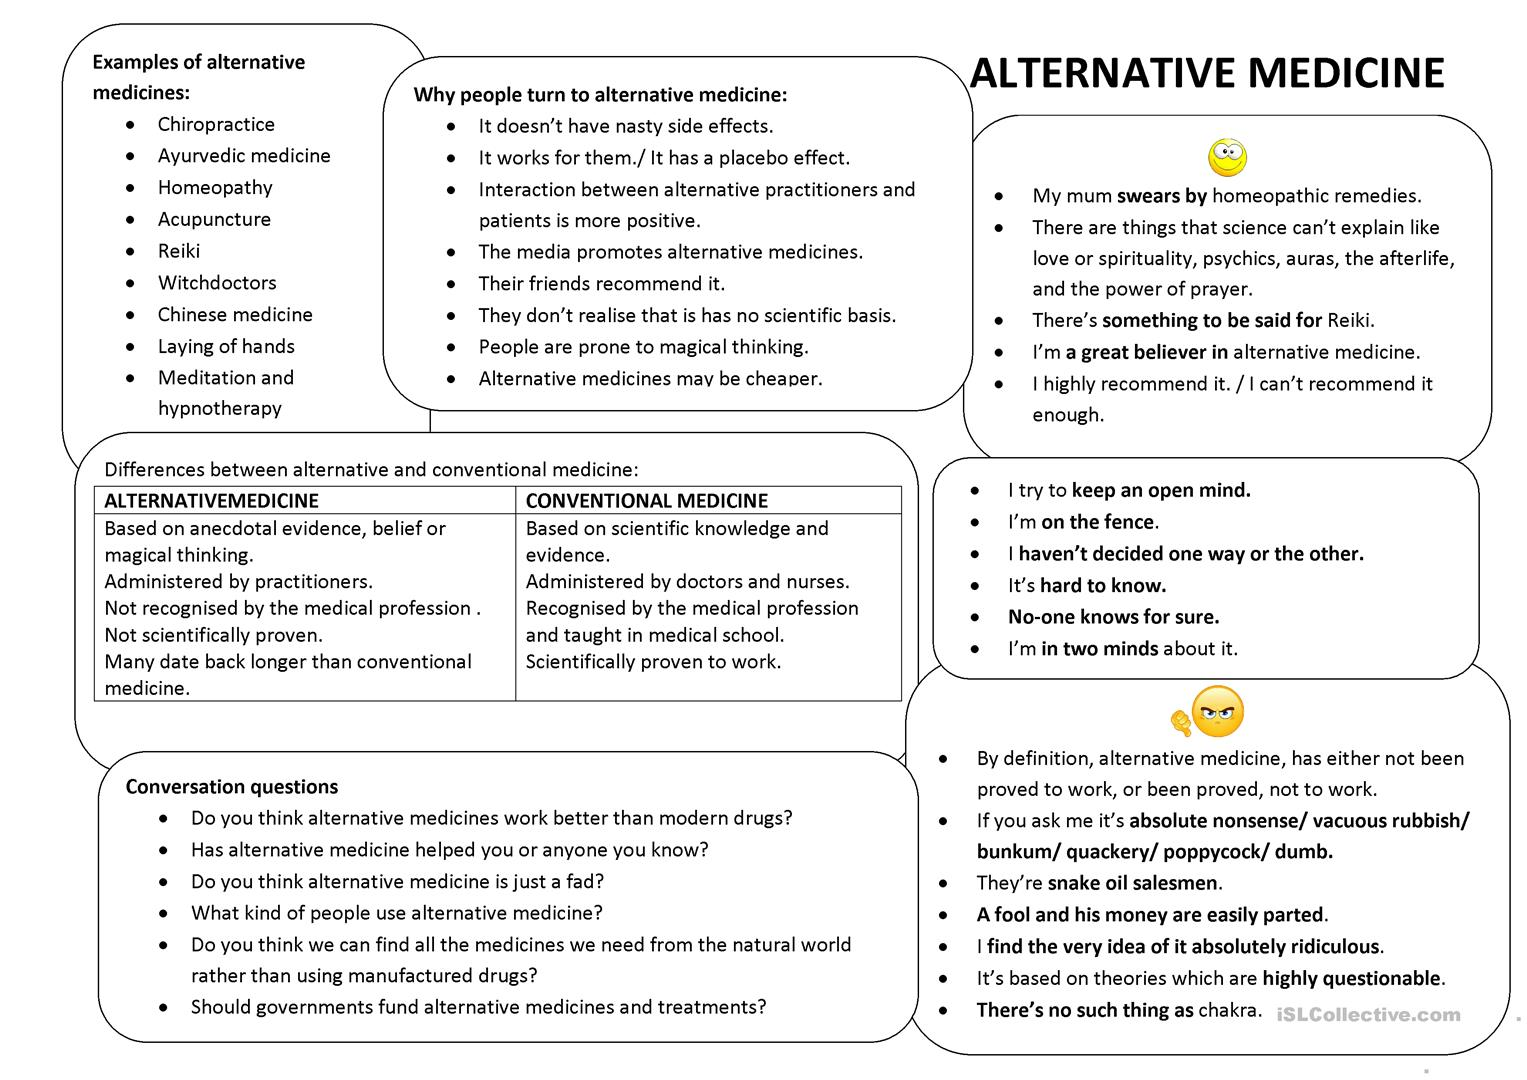 Alternative Medicine Conversation Class Worksheet